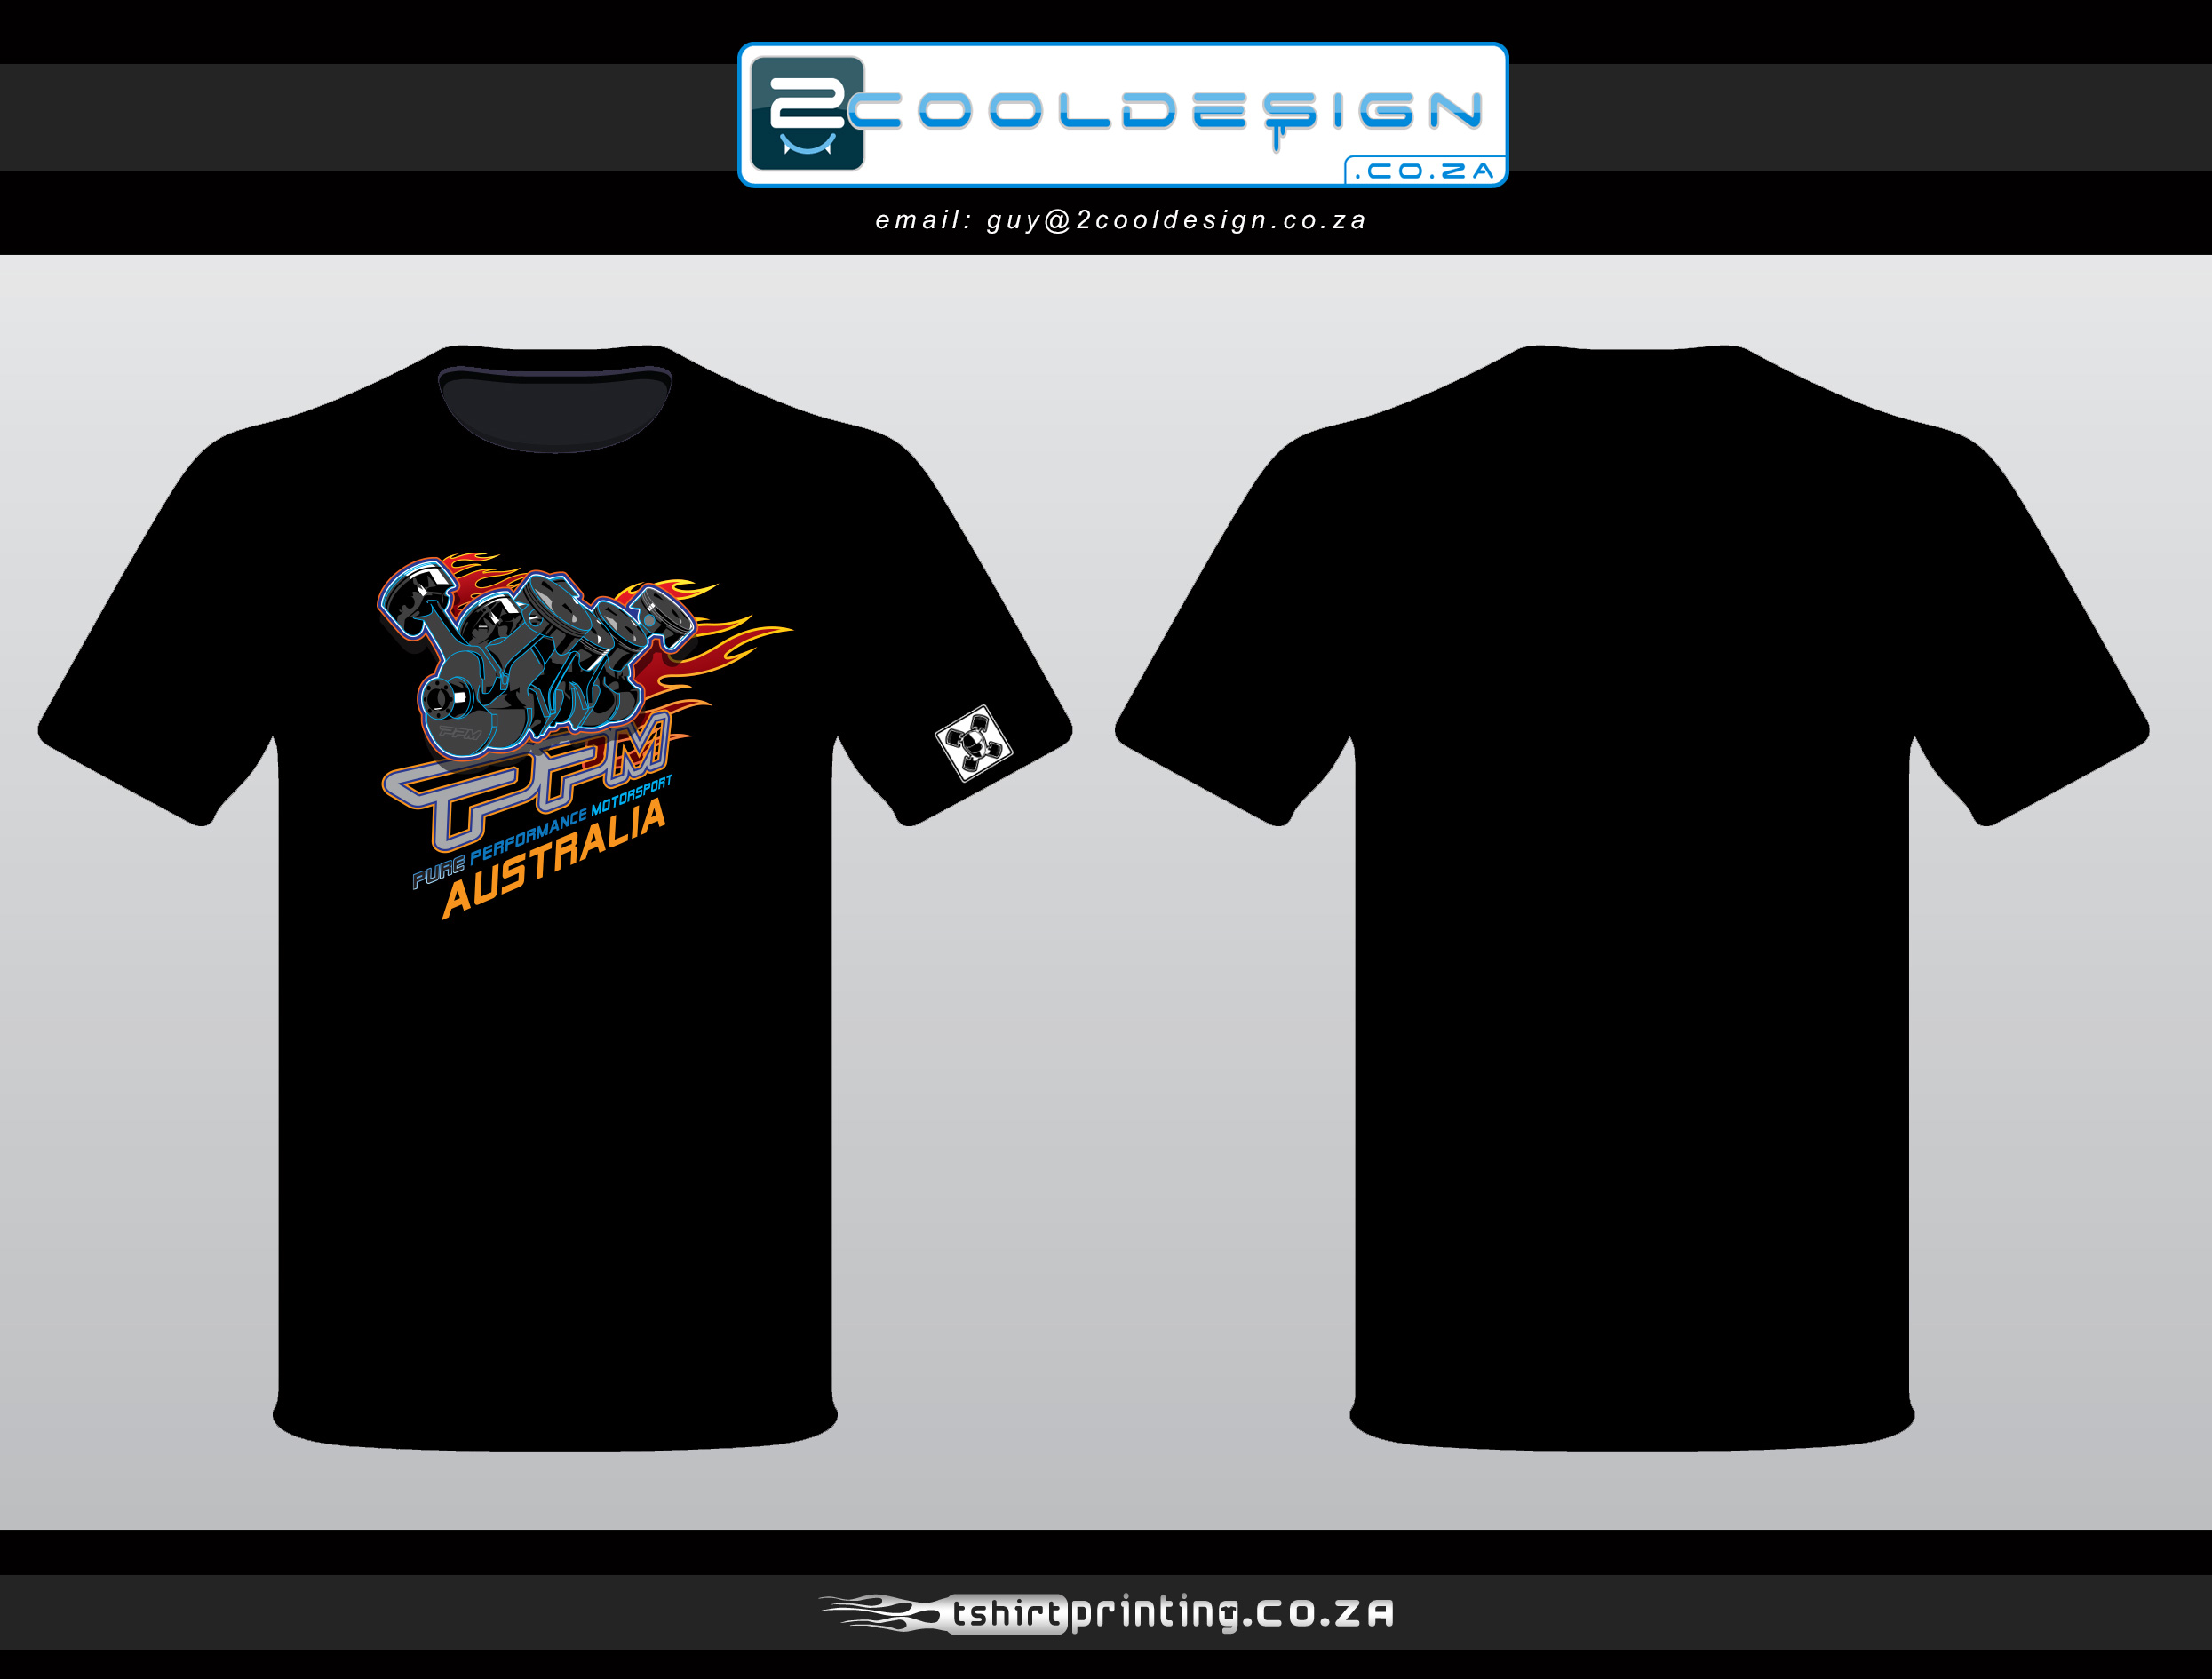 v8 motor piston tshirt design for ppm racing v8 tshirt